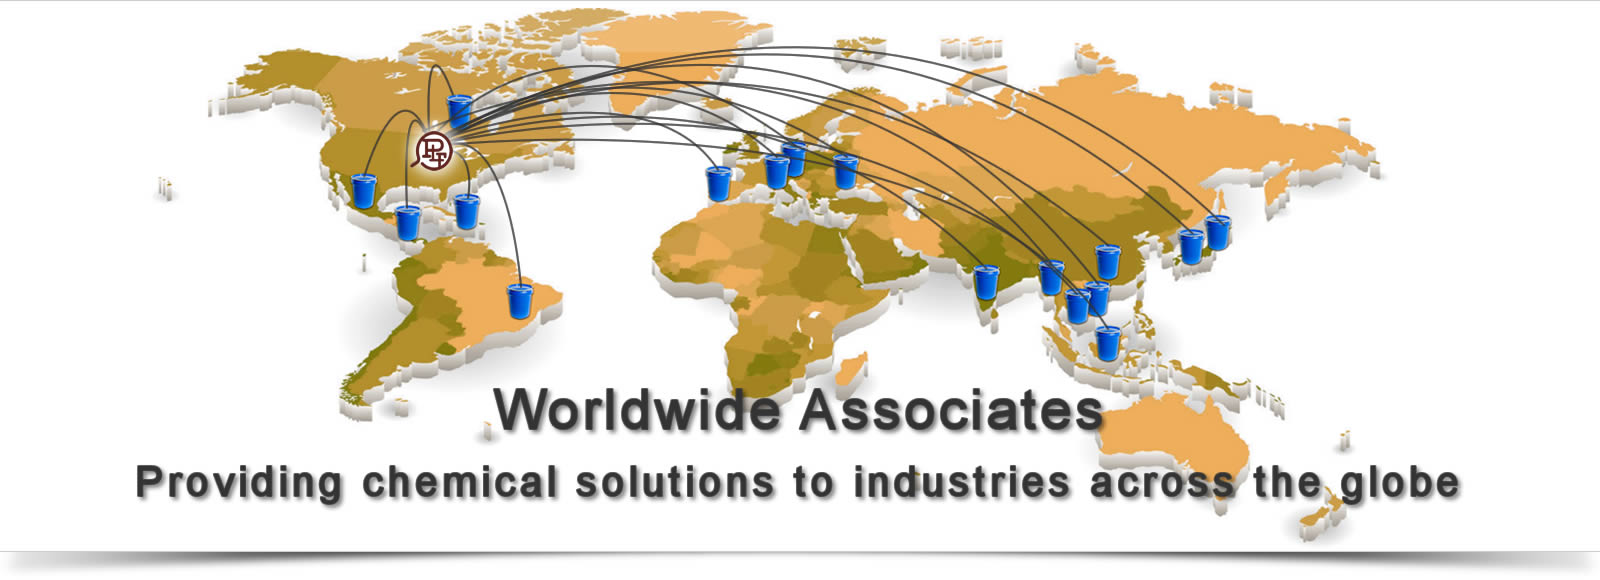 As Worldwide Associates we provide chemical solutions to inductries across the globe